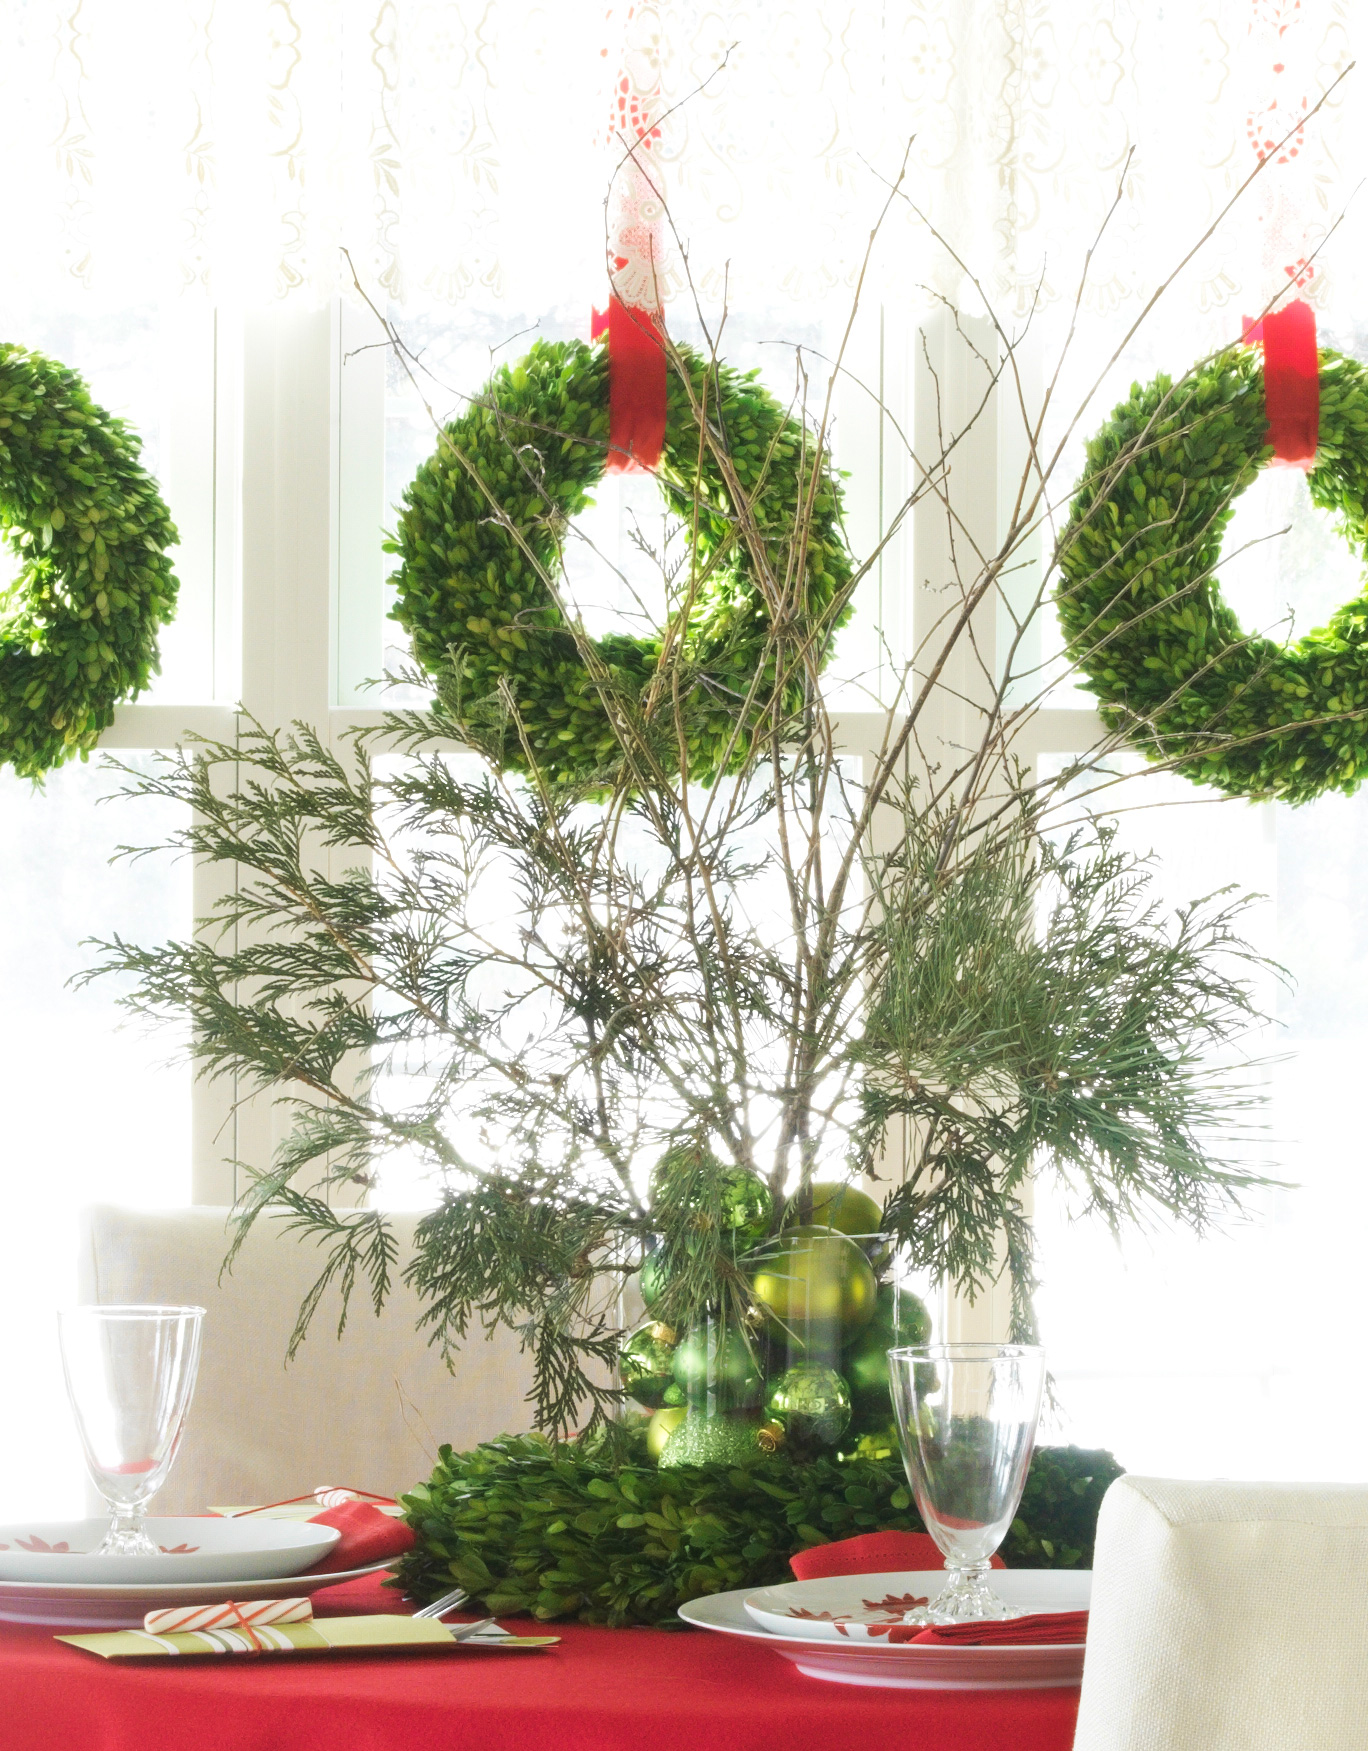 Christmas centerpiece ideas: wreath